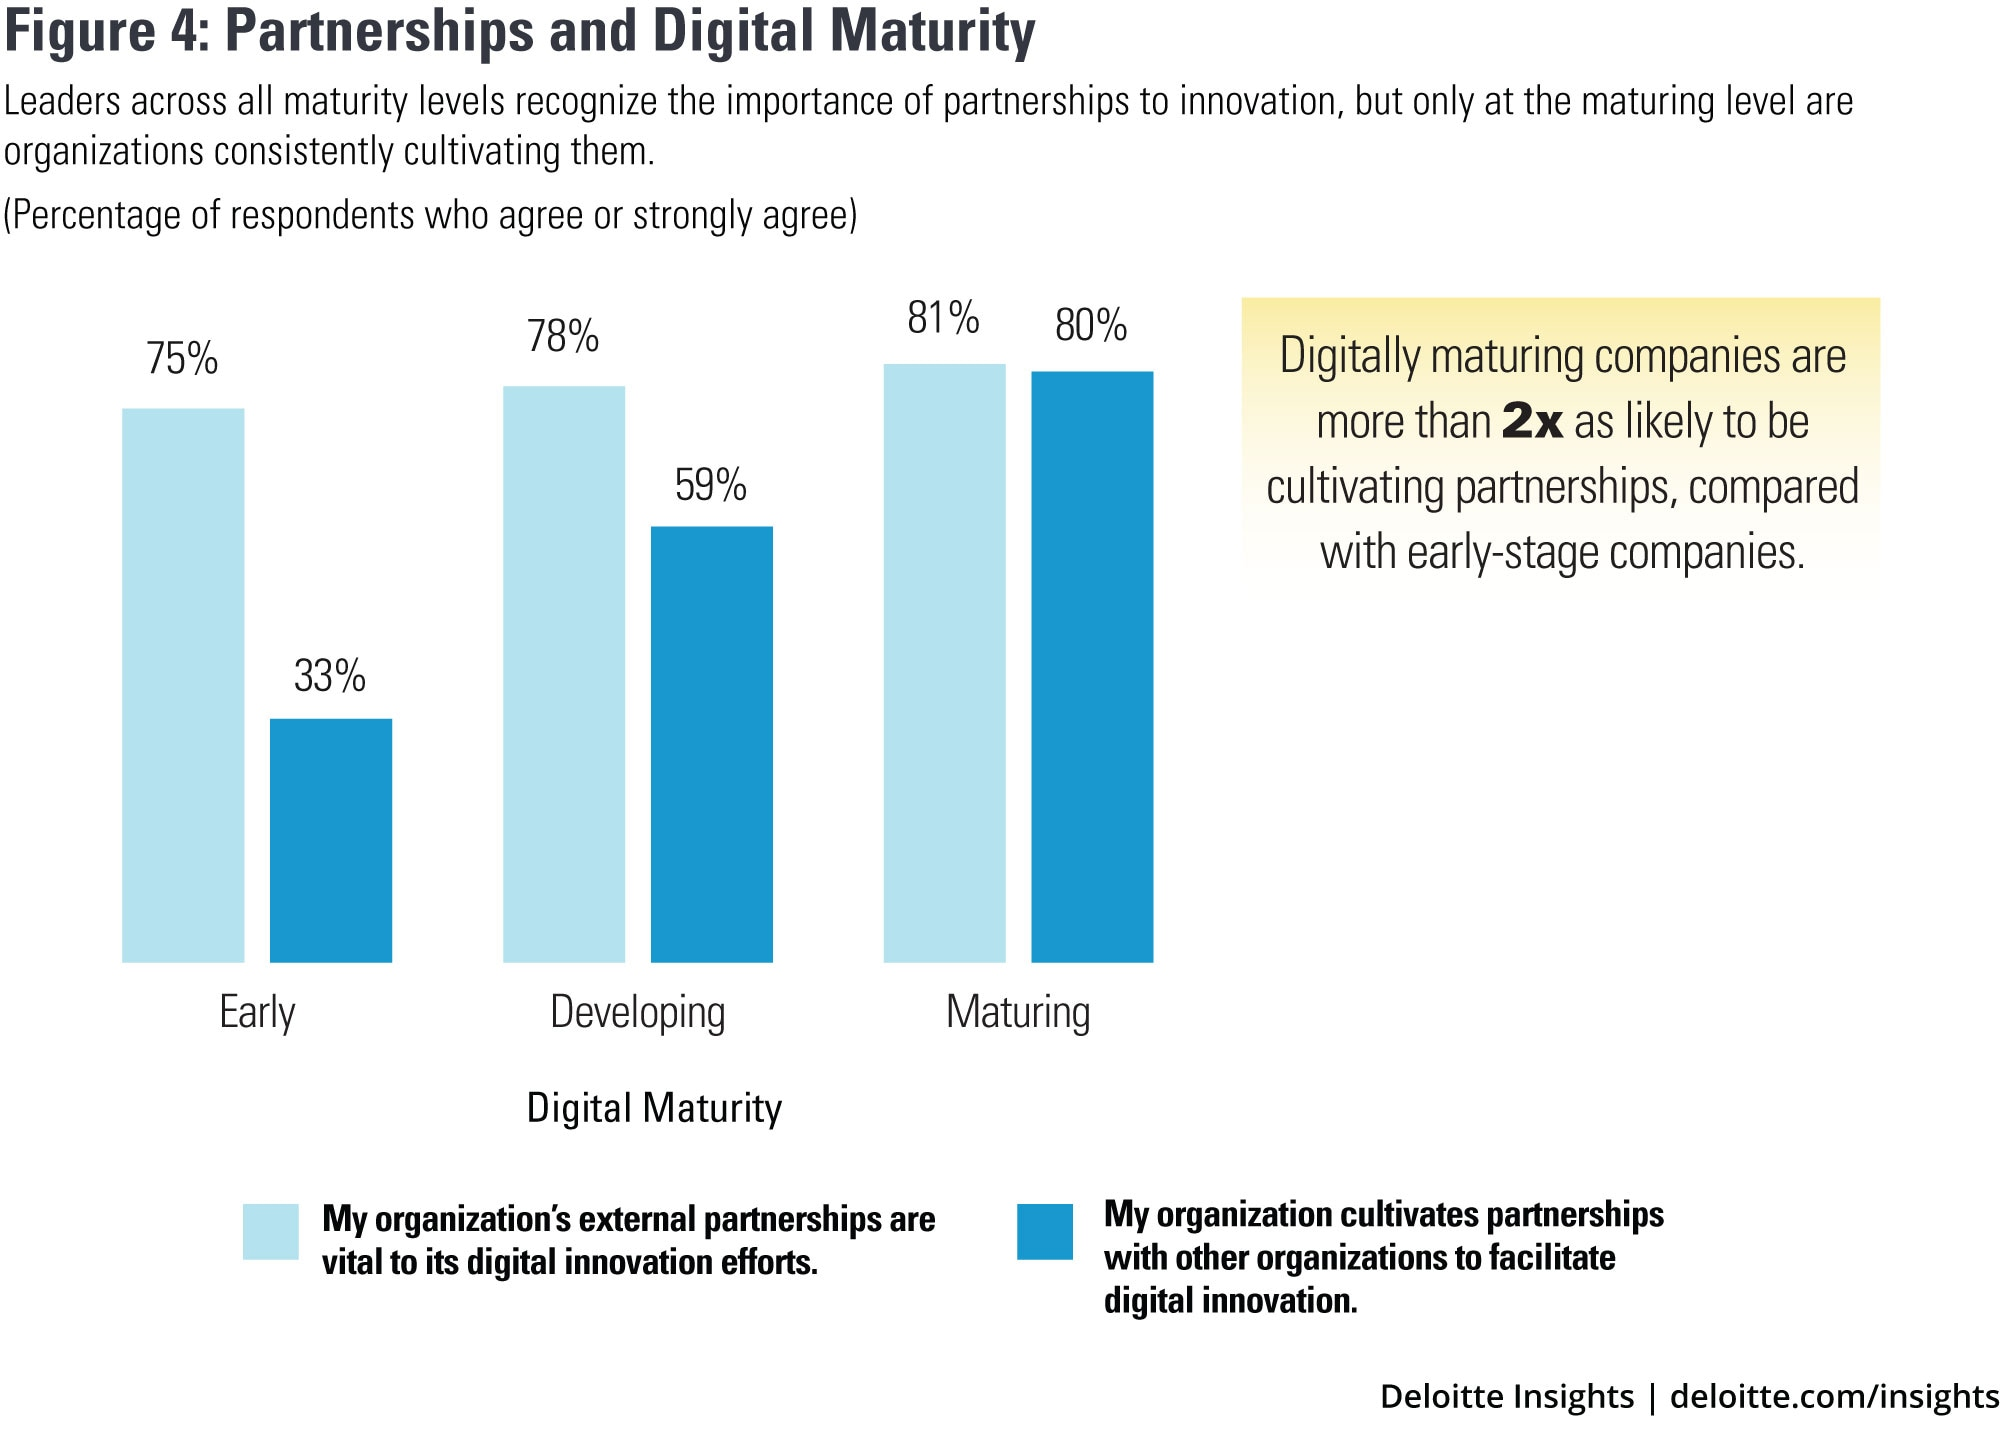 Partnerships and digital maturity